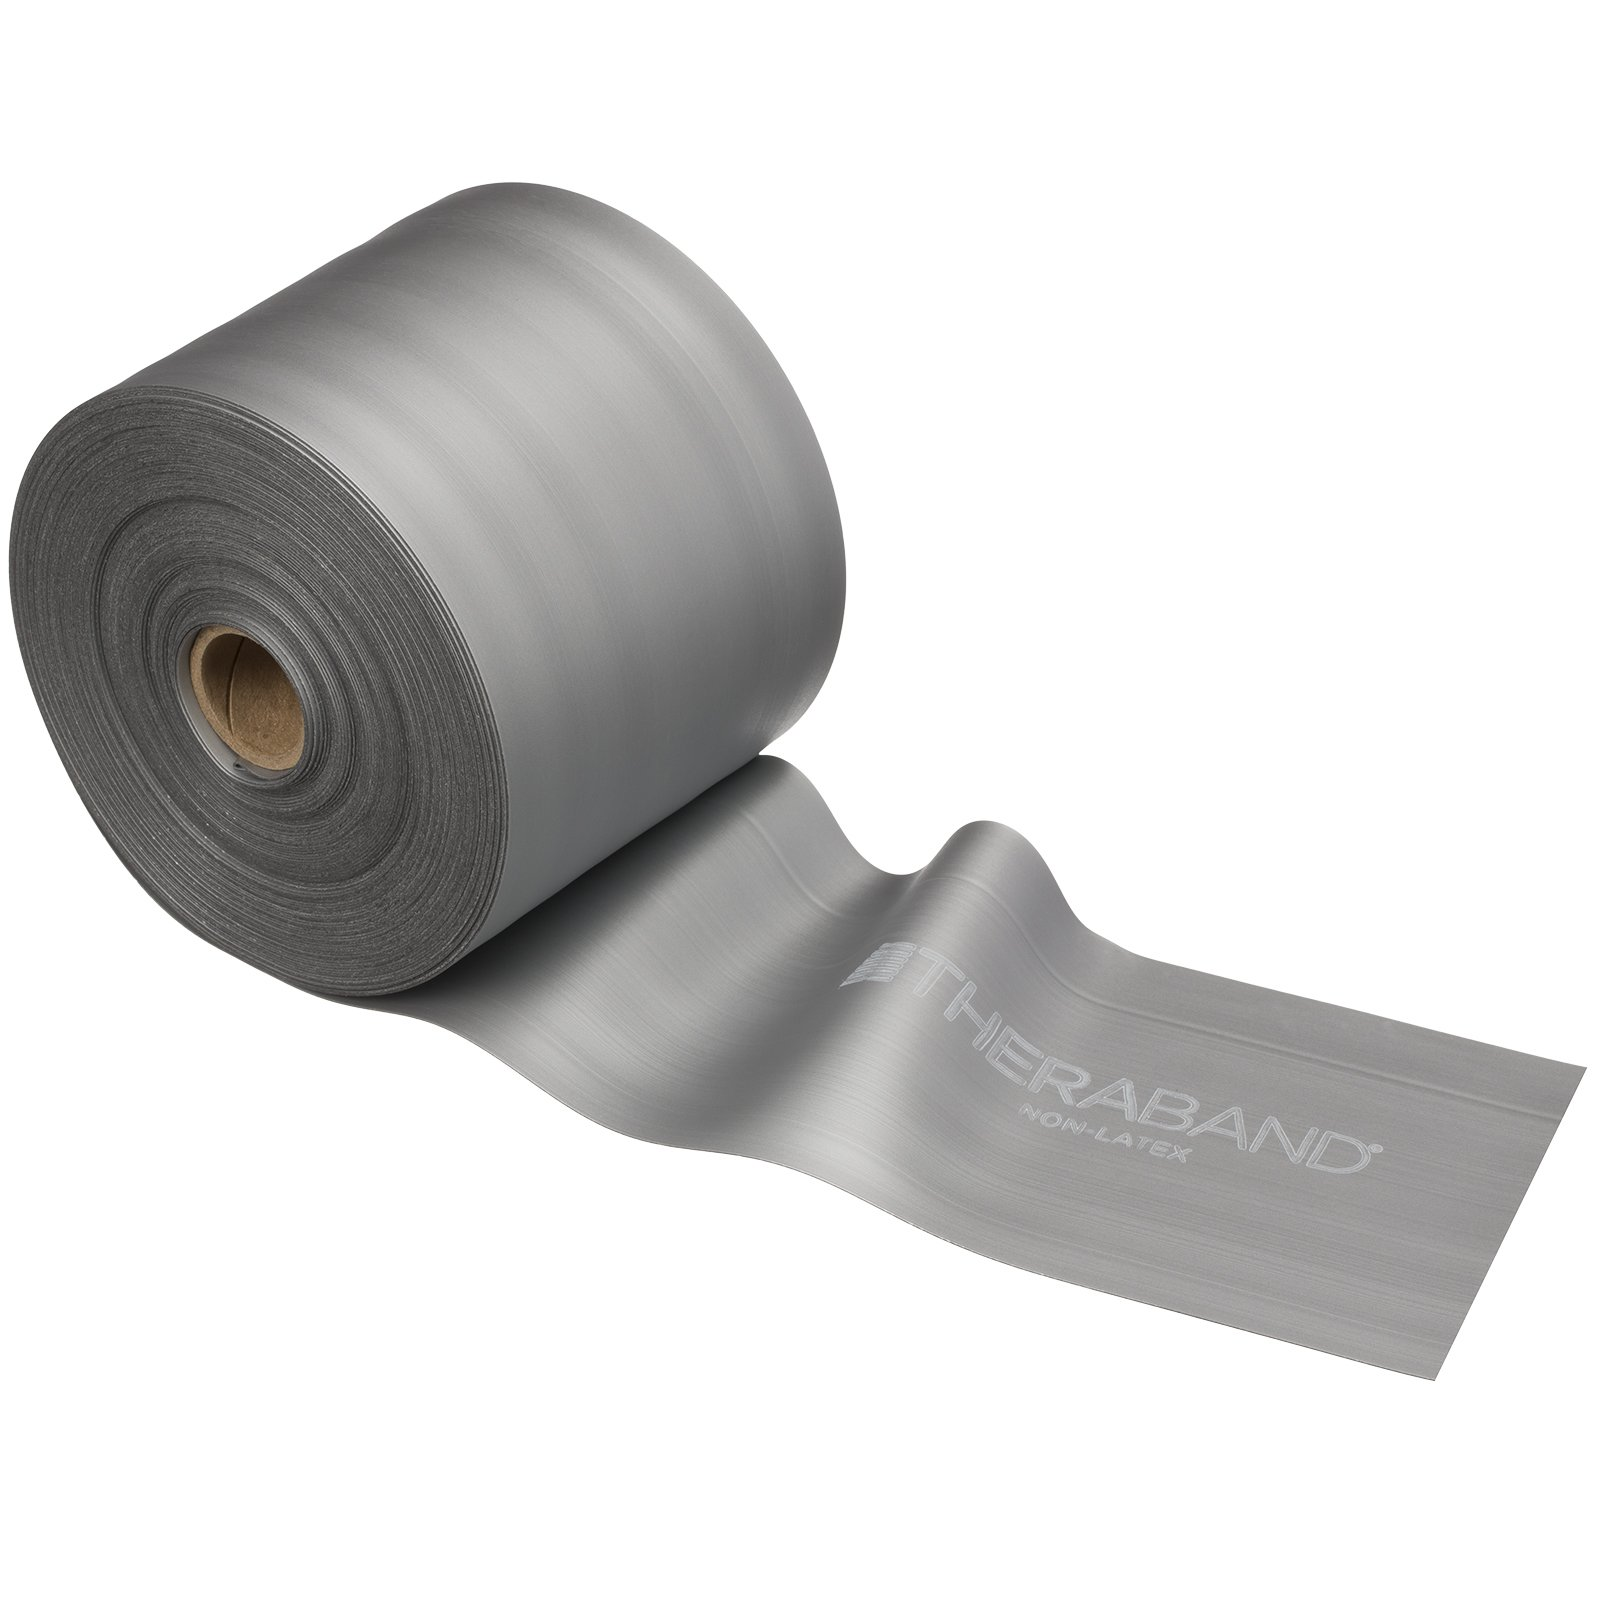 TheraBand Resistance Band 25 Yard Roll, Super Heavy Silver Non-Latex Professional Elastic